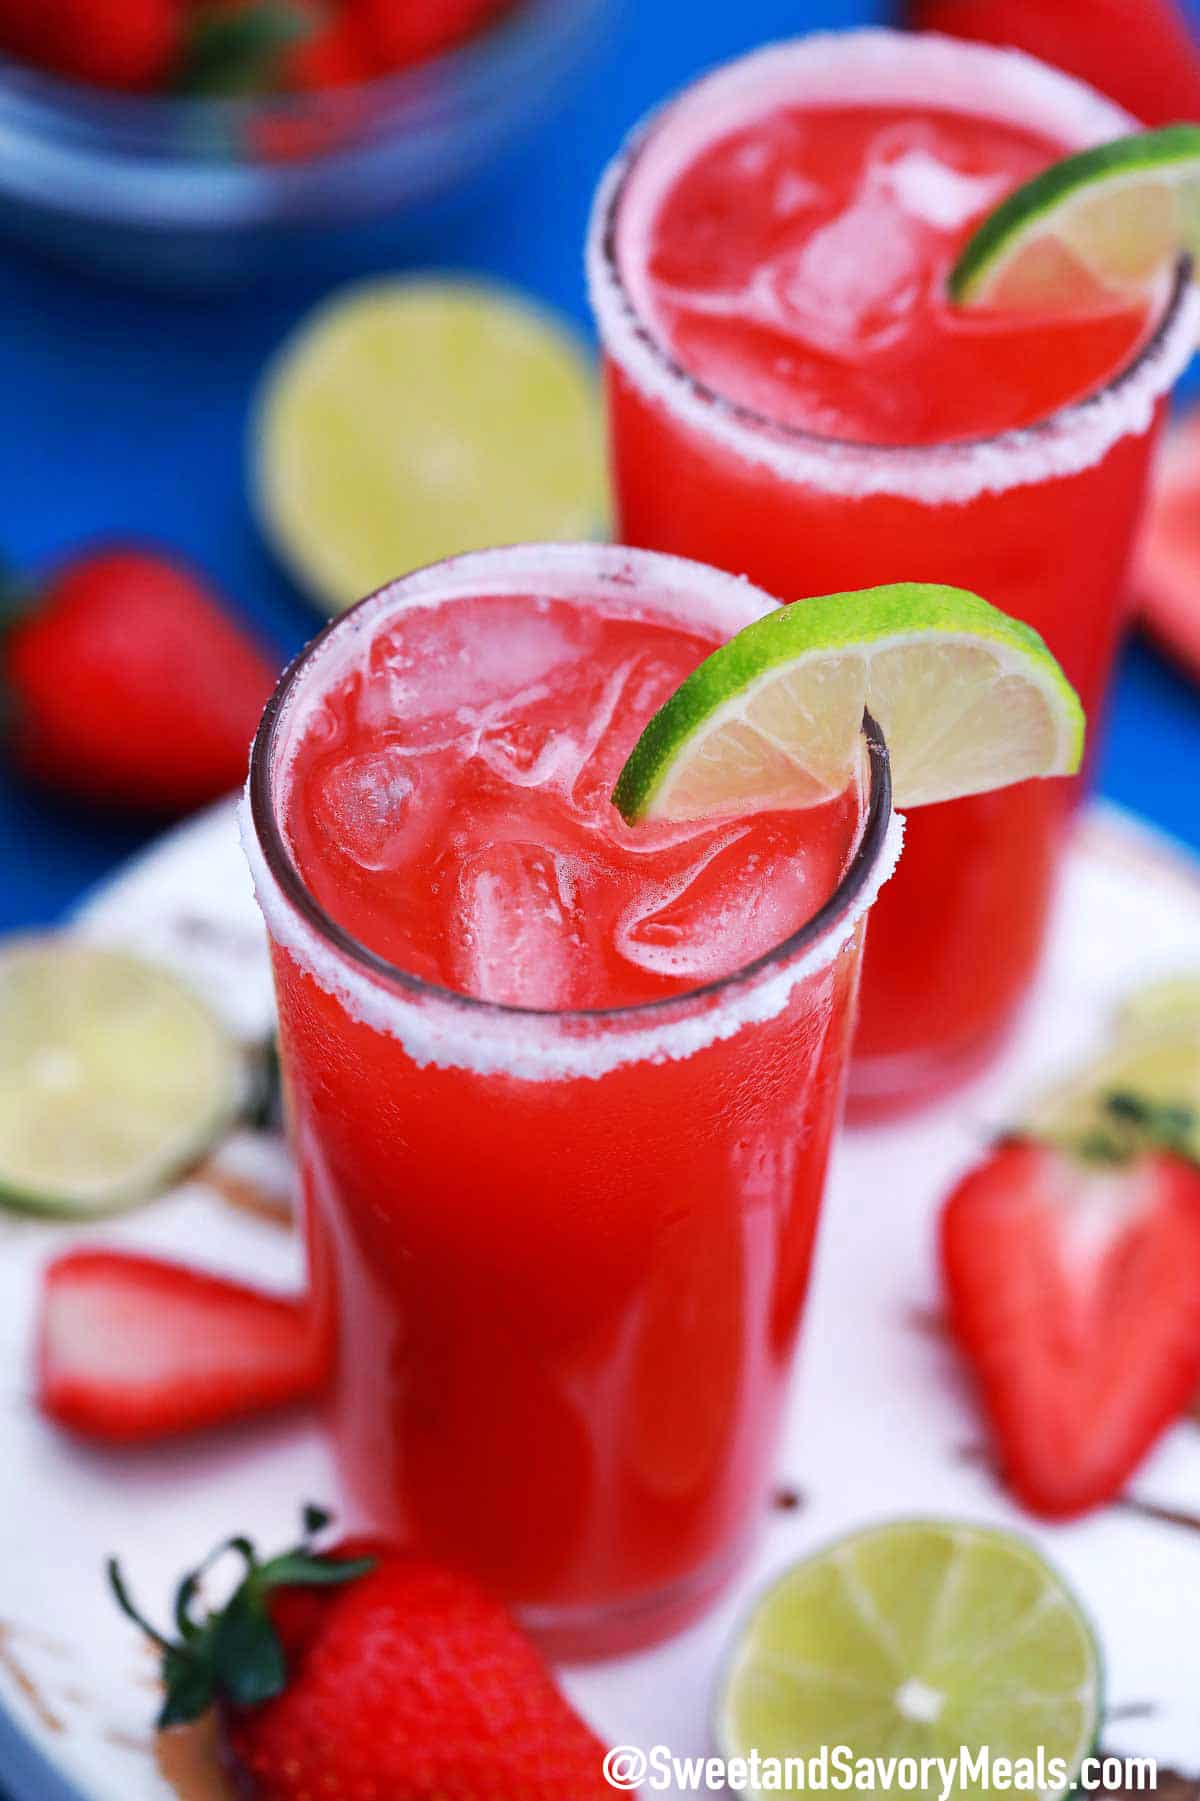 Strawberry Margarita Drink Recipe Easy Homemade Video Sweet And Savory Meals